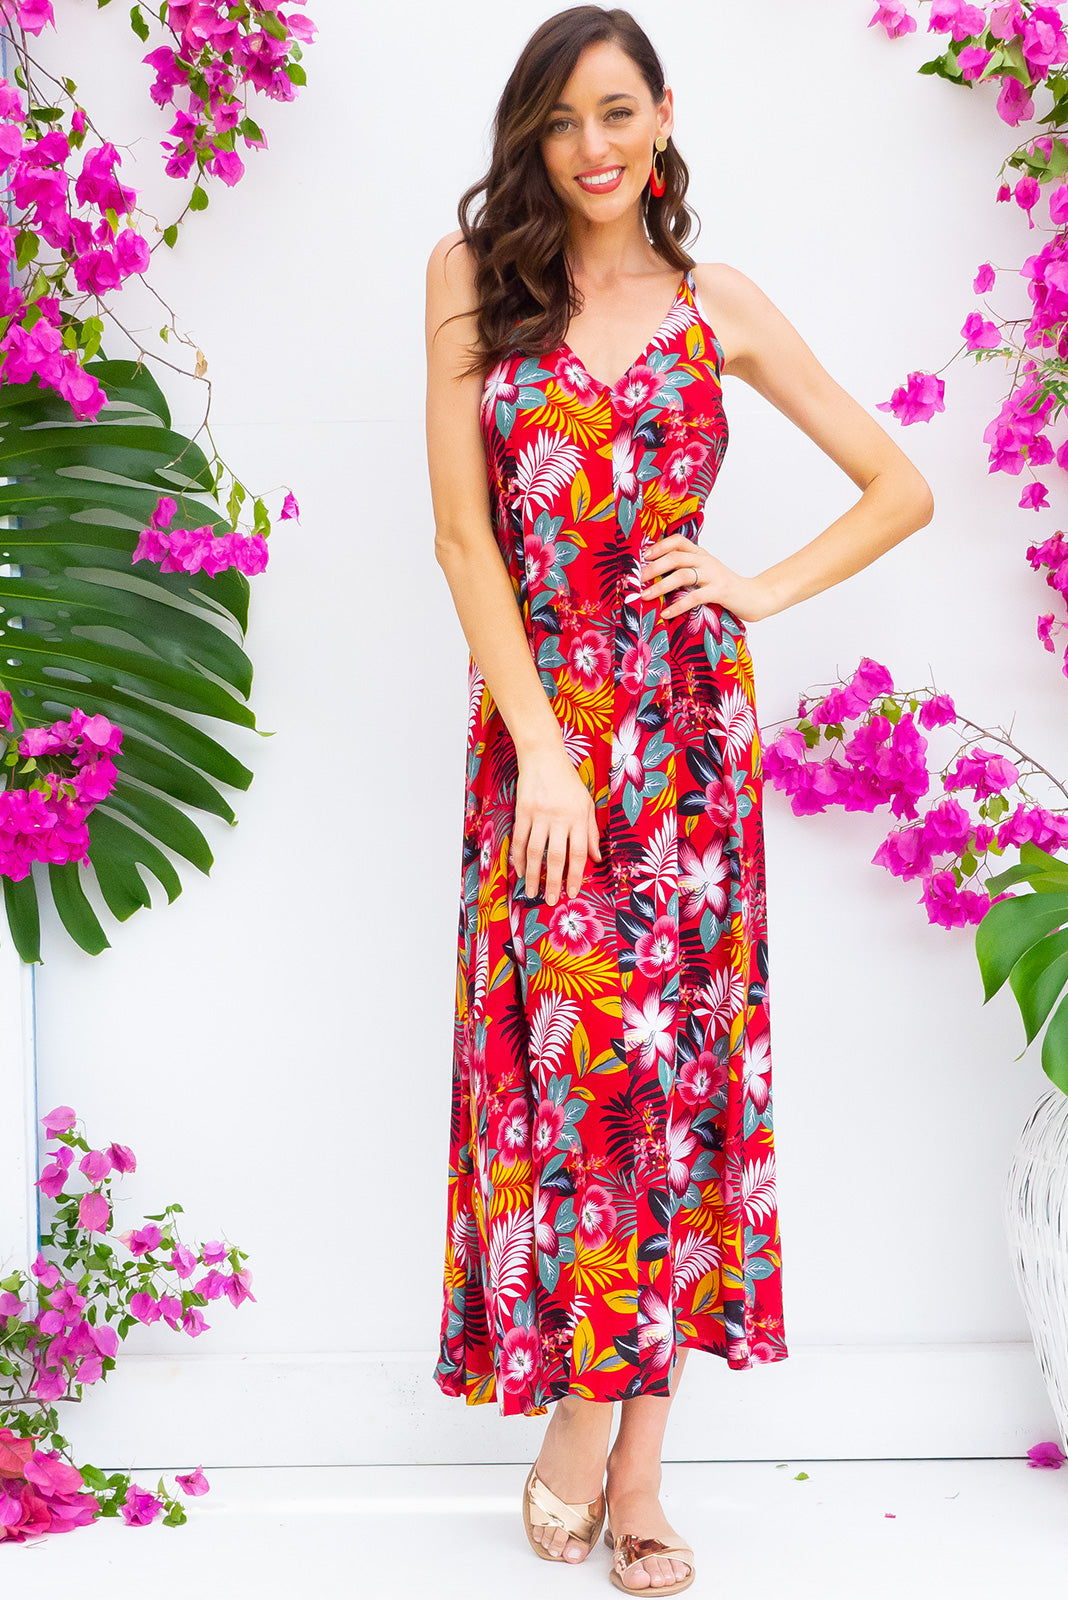 Meilani Red Siren Maxi Dress in a sexy strappy design featuring a low cut back and self coloured belt in a bold tropical inspired botanical print on a cool red base